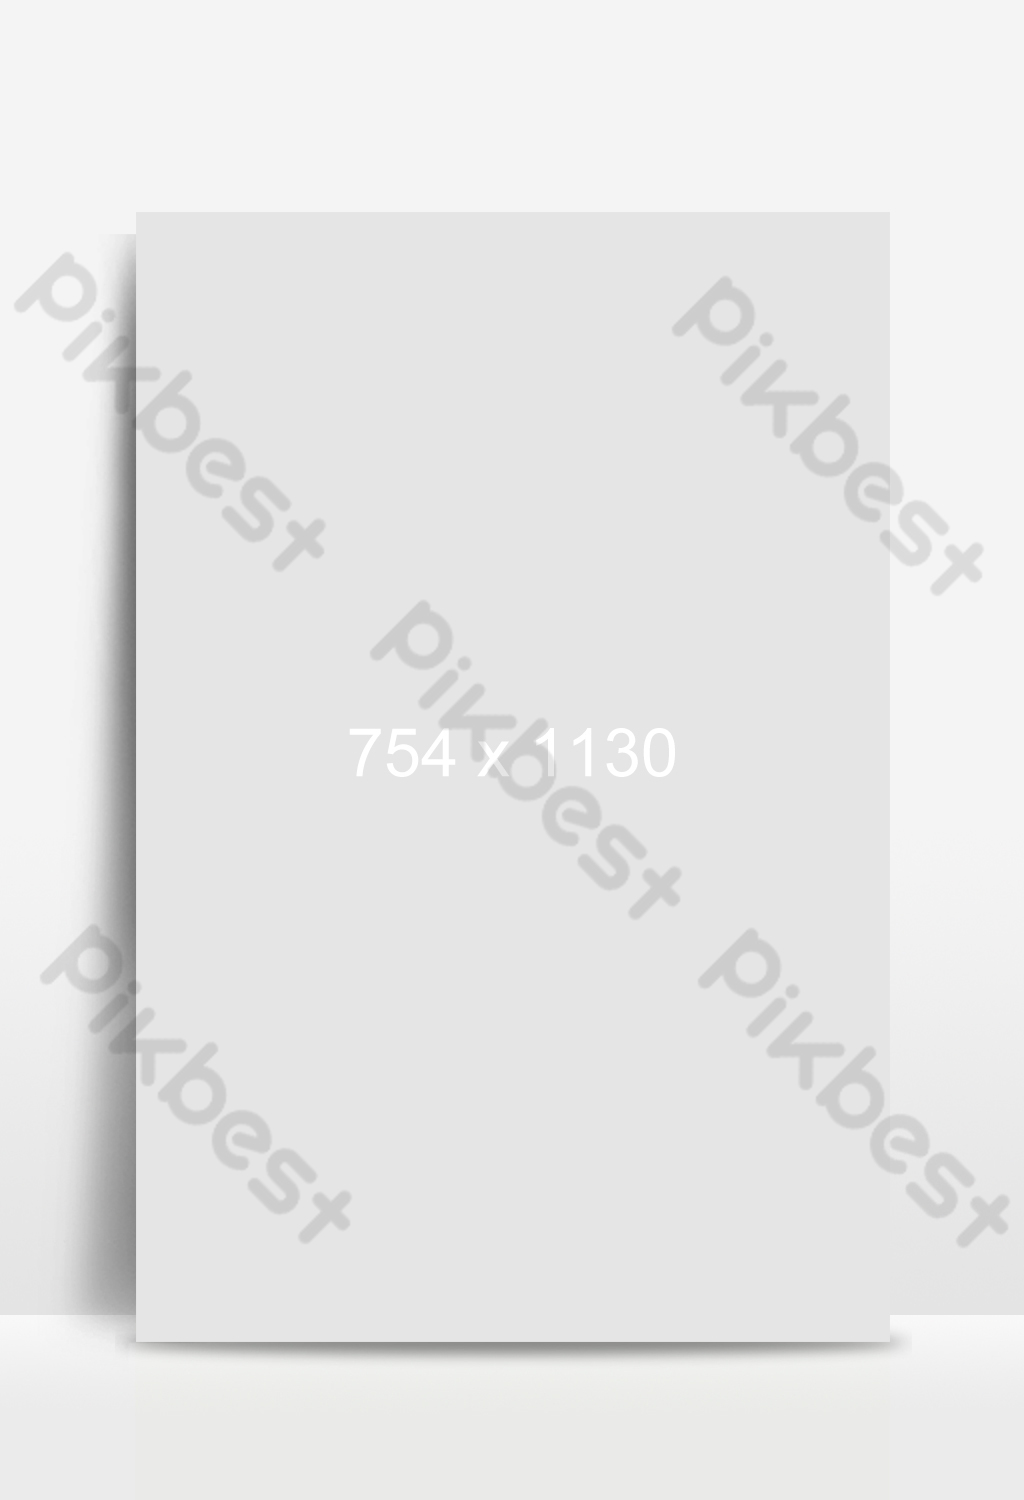 may fruit peach background picture backgrounds psd free download pikbest pikbest